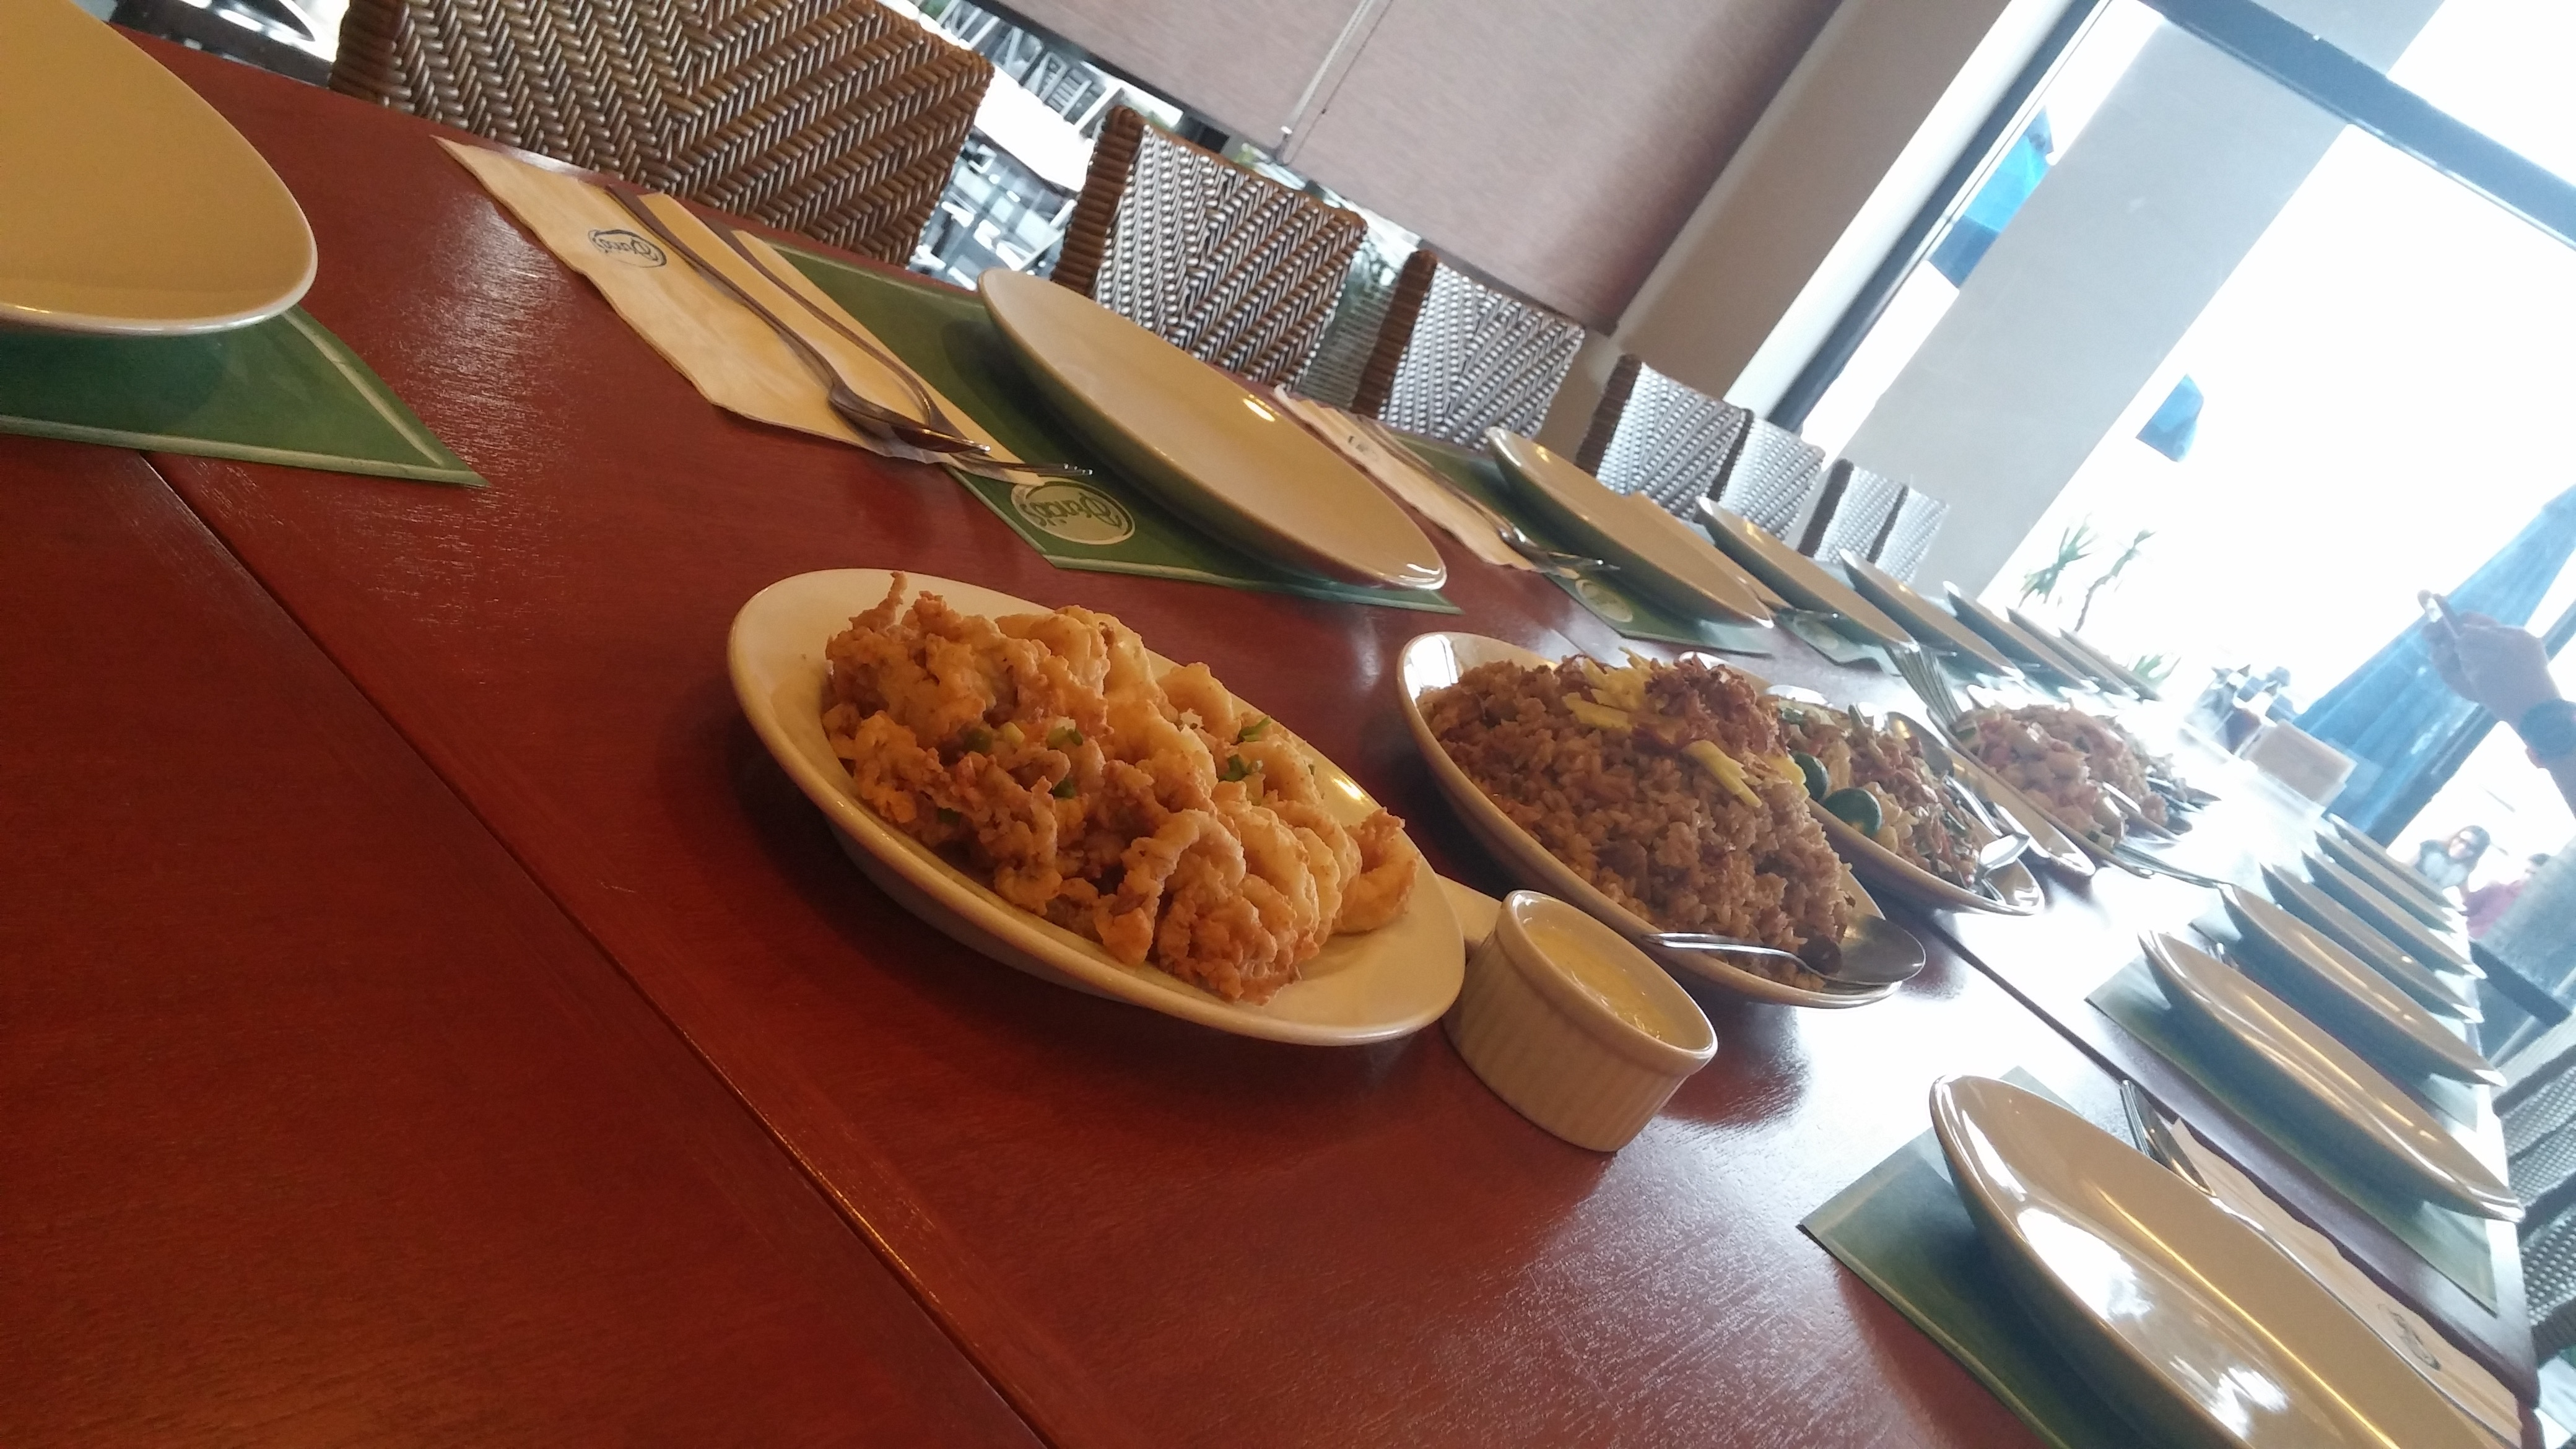 Dinner experience at dencio s bar and grill restaurant in for Food bar experience